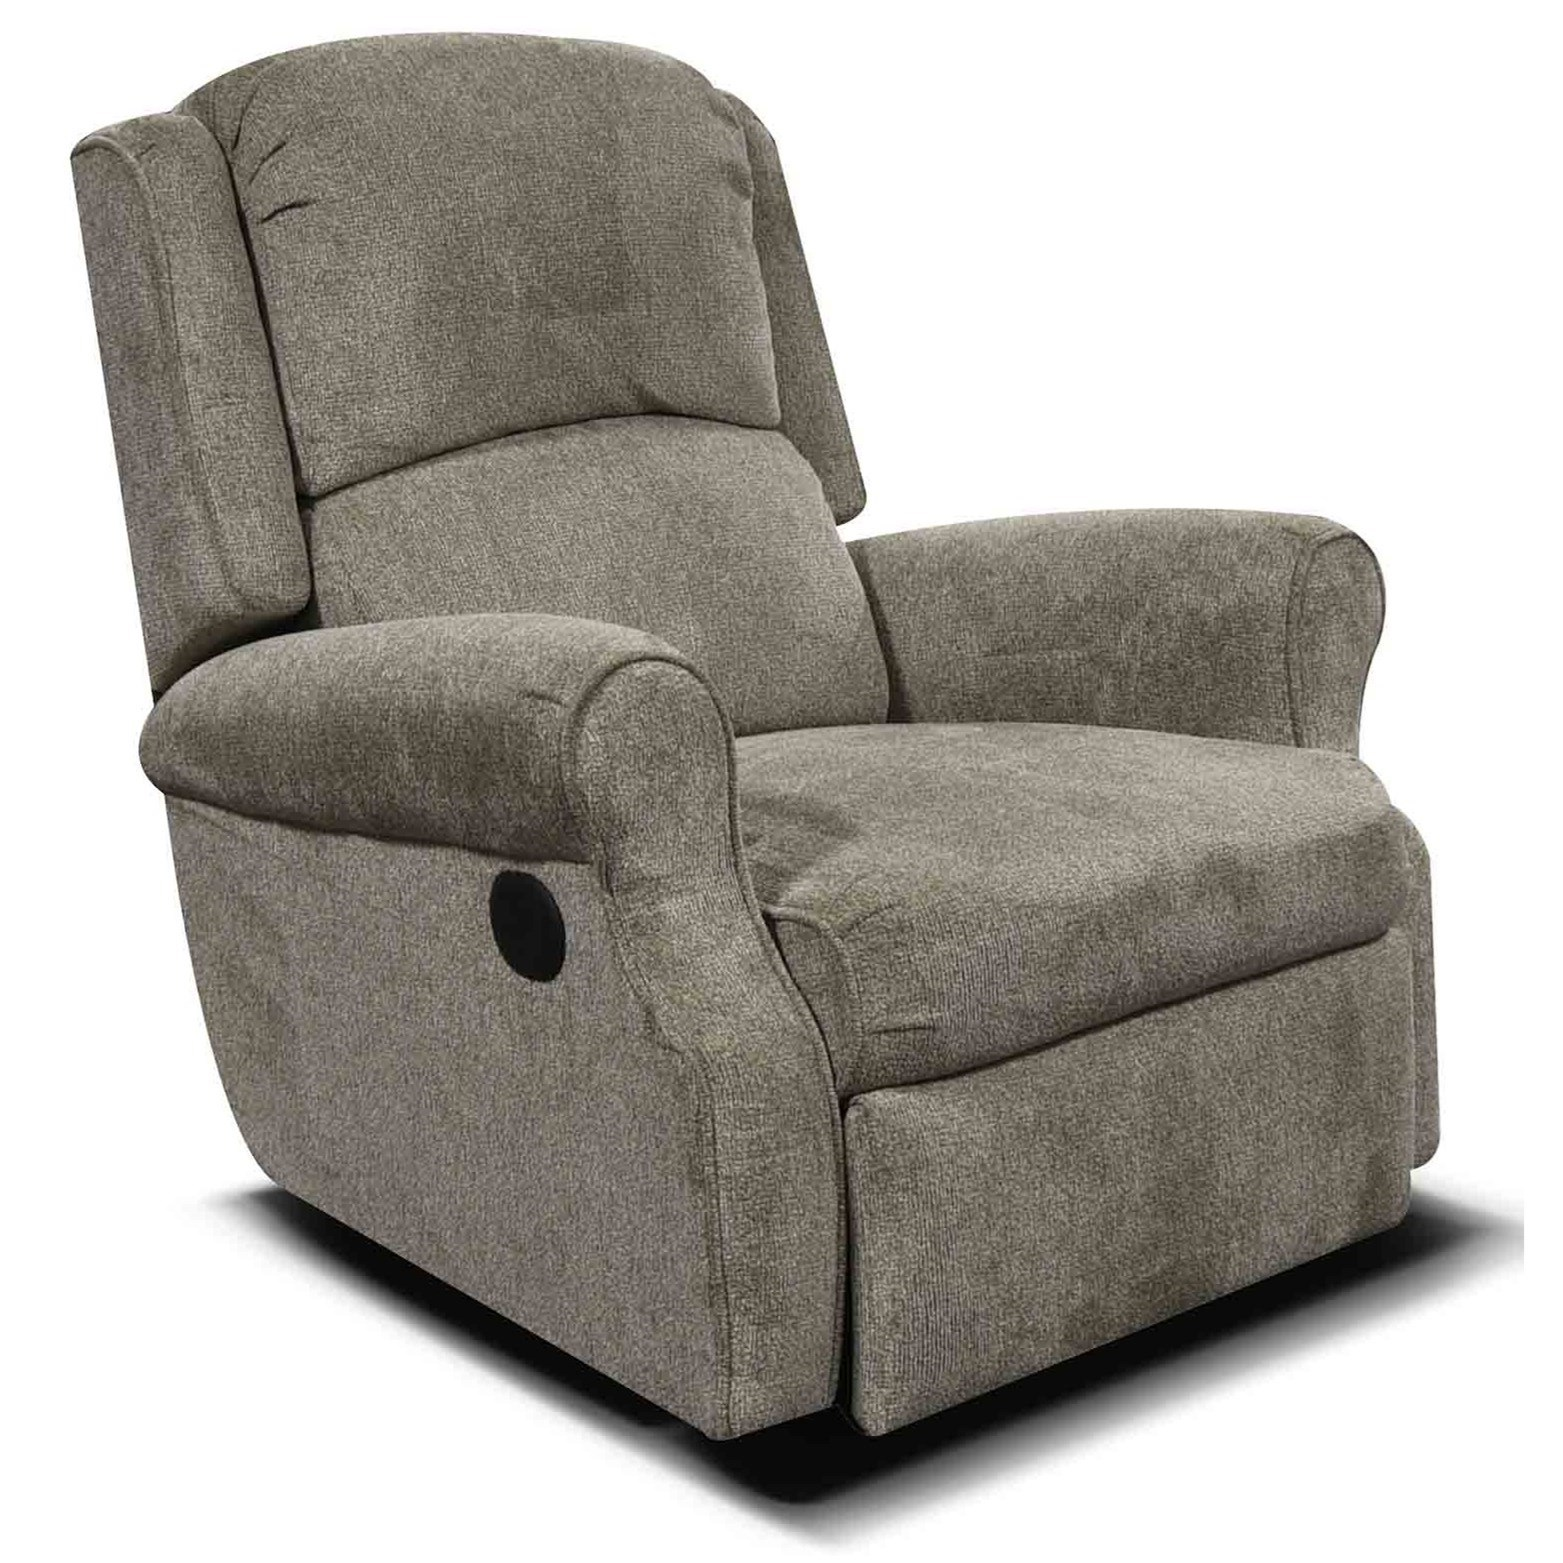 Marybeth Rocker Recliner by England at Prime Brothers Furniture